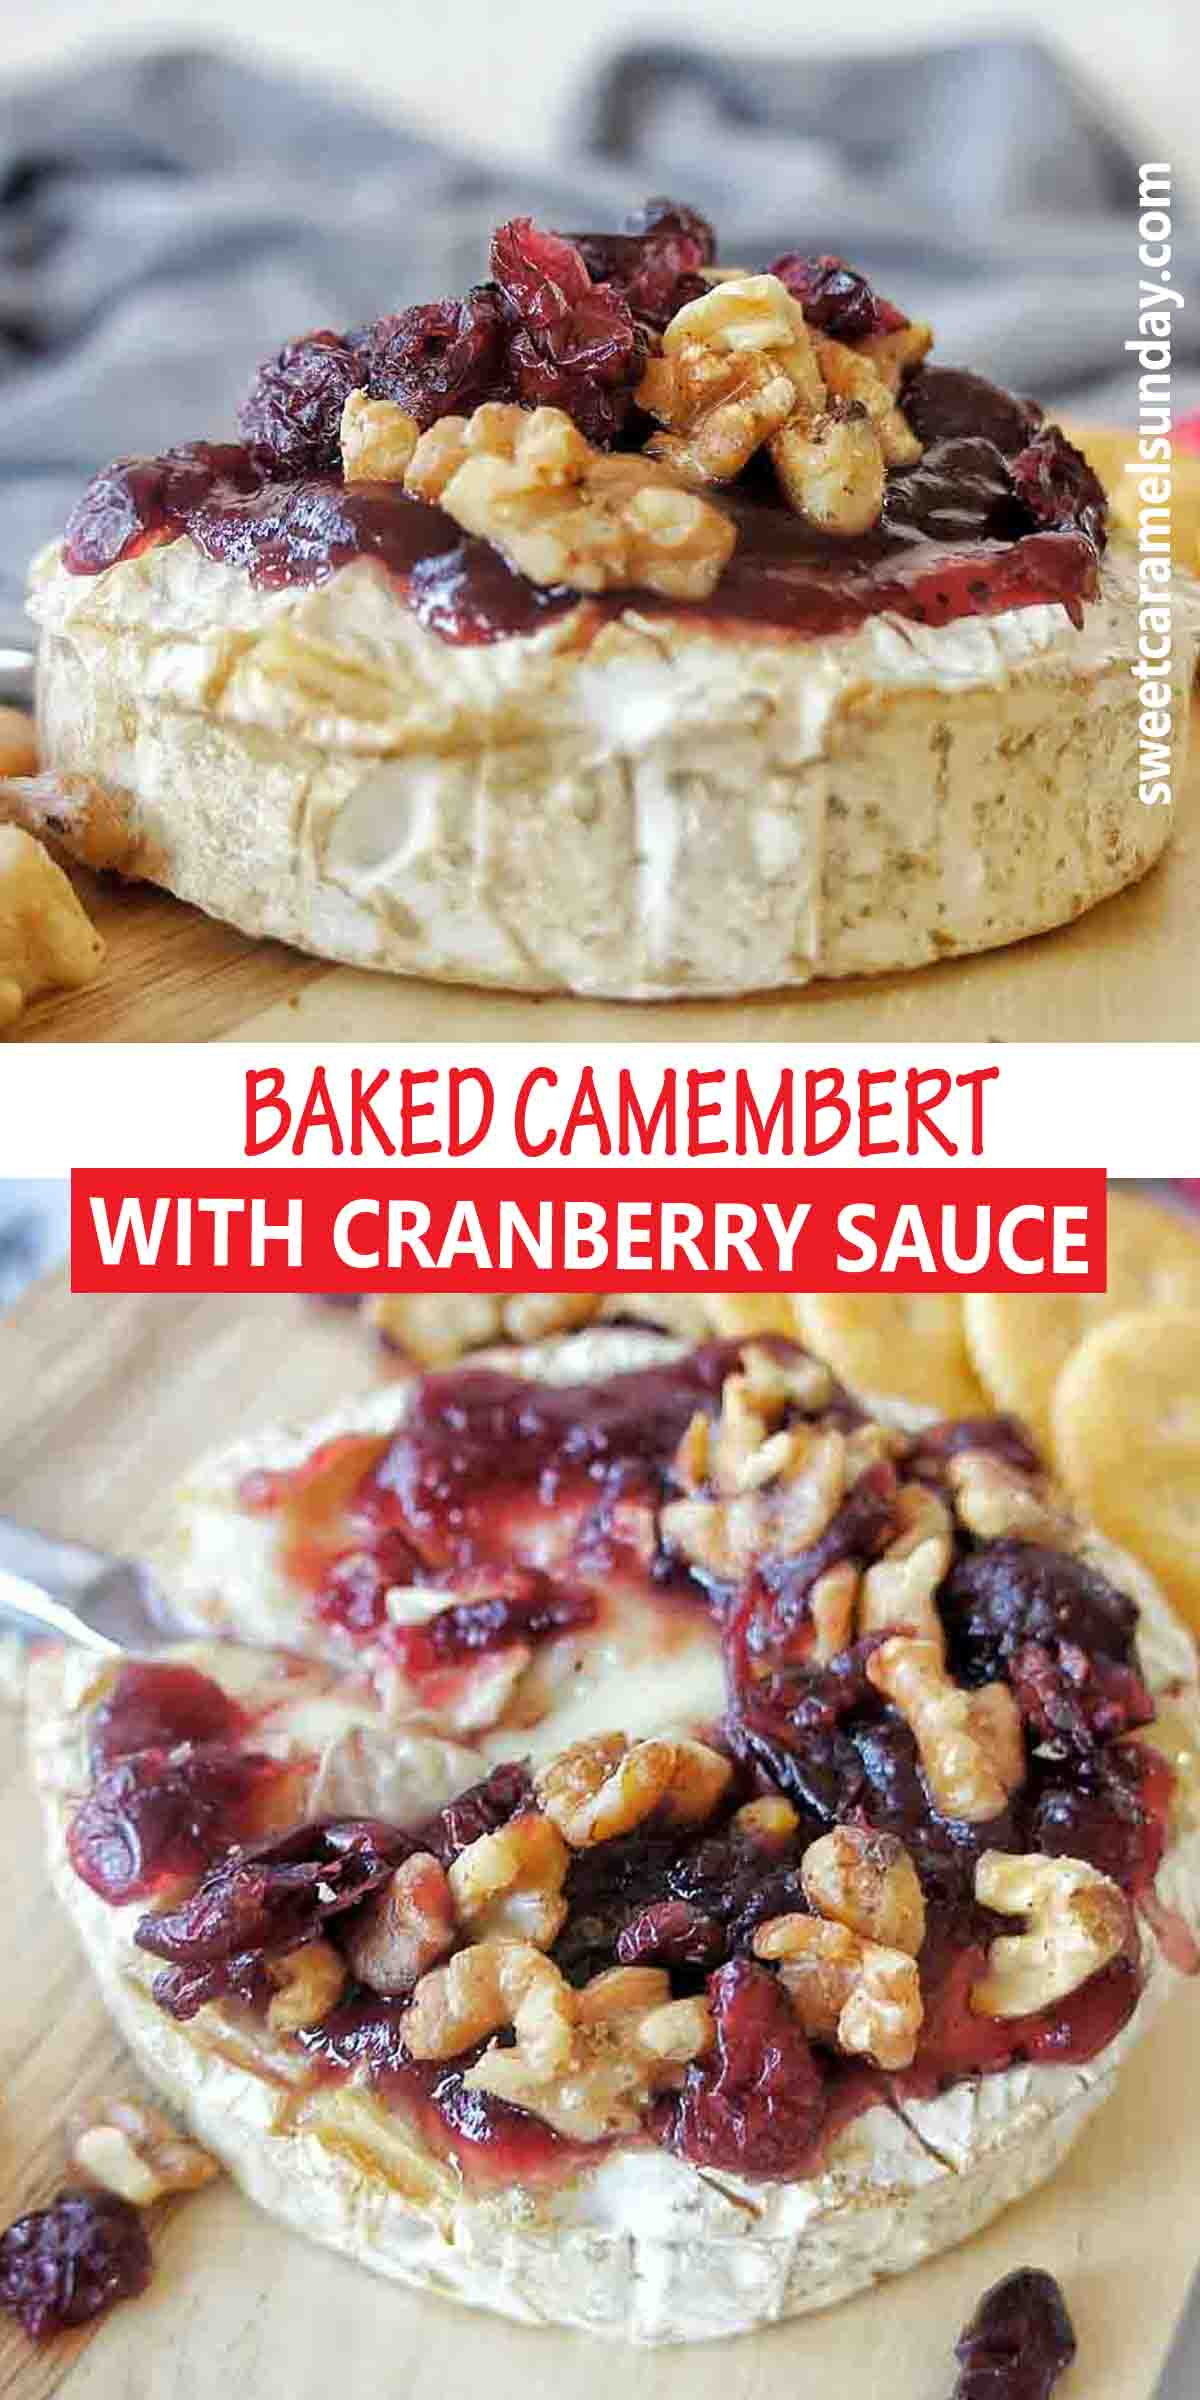 Baked Camemebert with cranberry sauce and text overlay